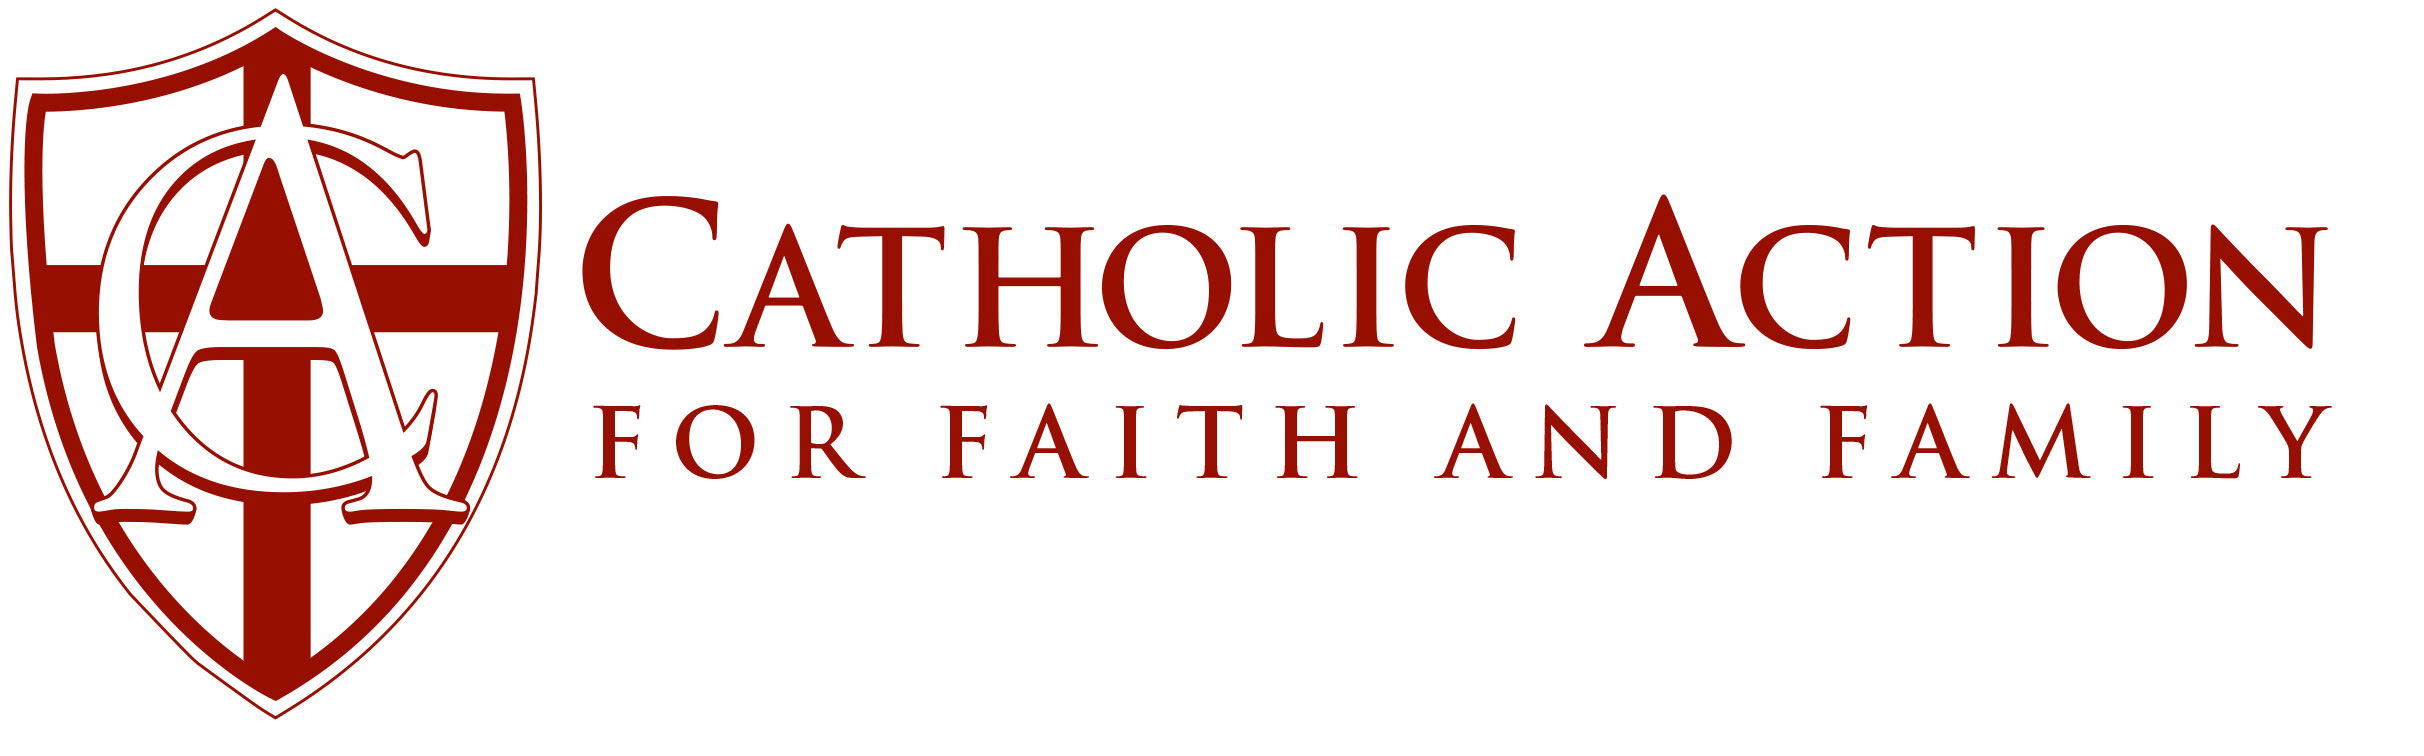 Catholic Action For Faith And Family